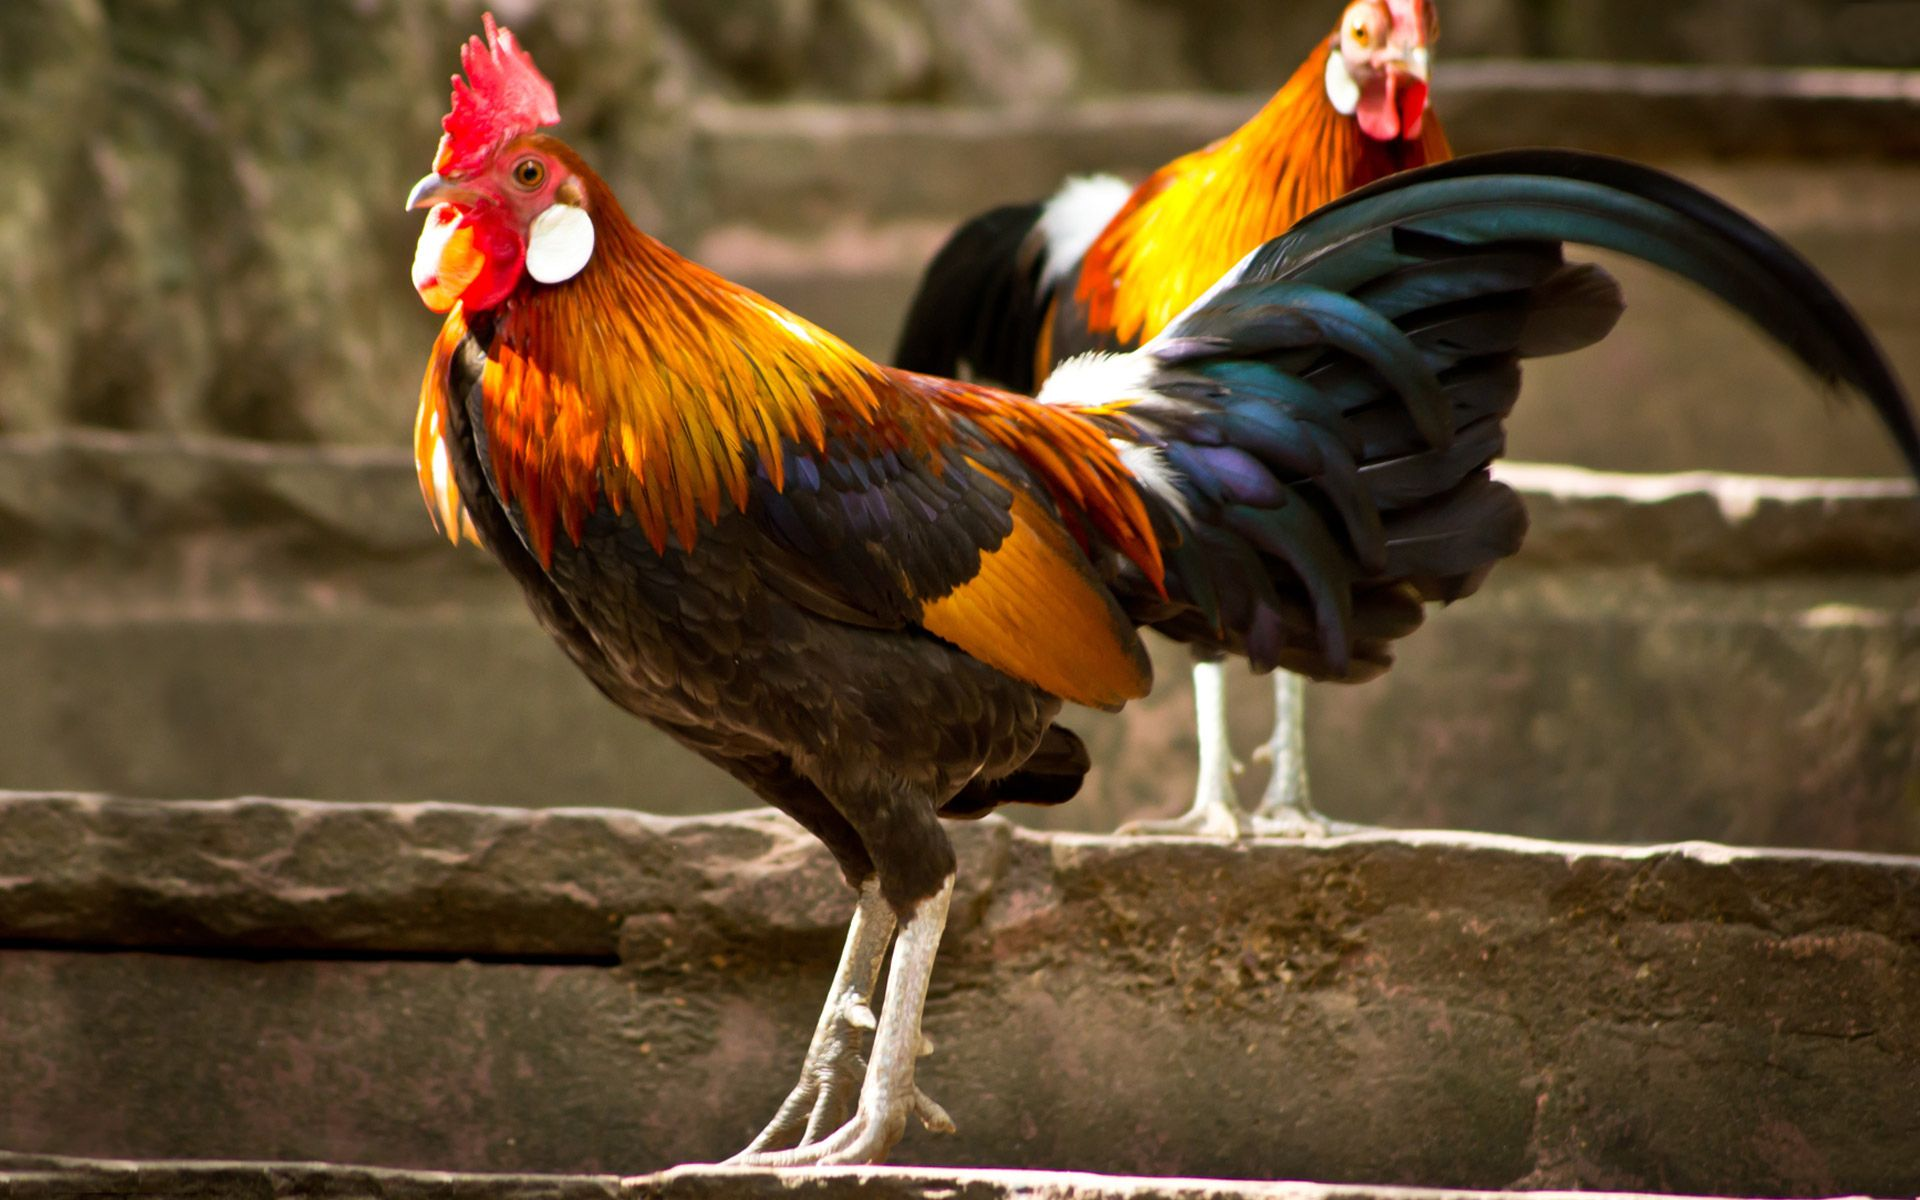 Rooster Jpg 1920 1200 Rooster Beautiful Photos Of Nature Bird Wallpaper